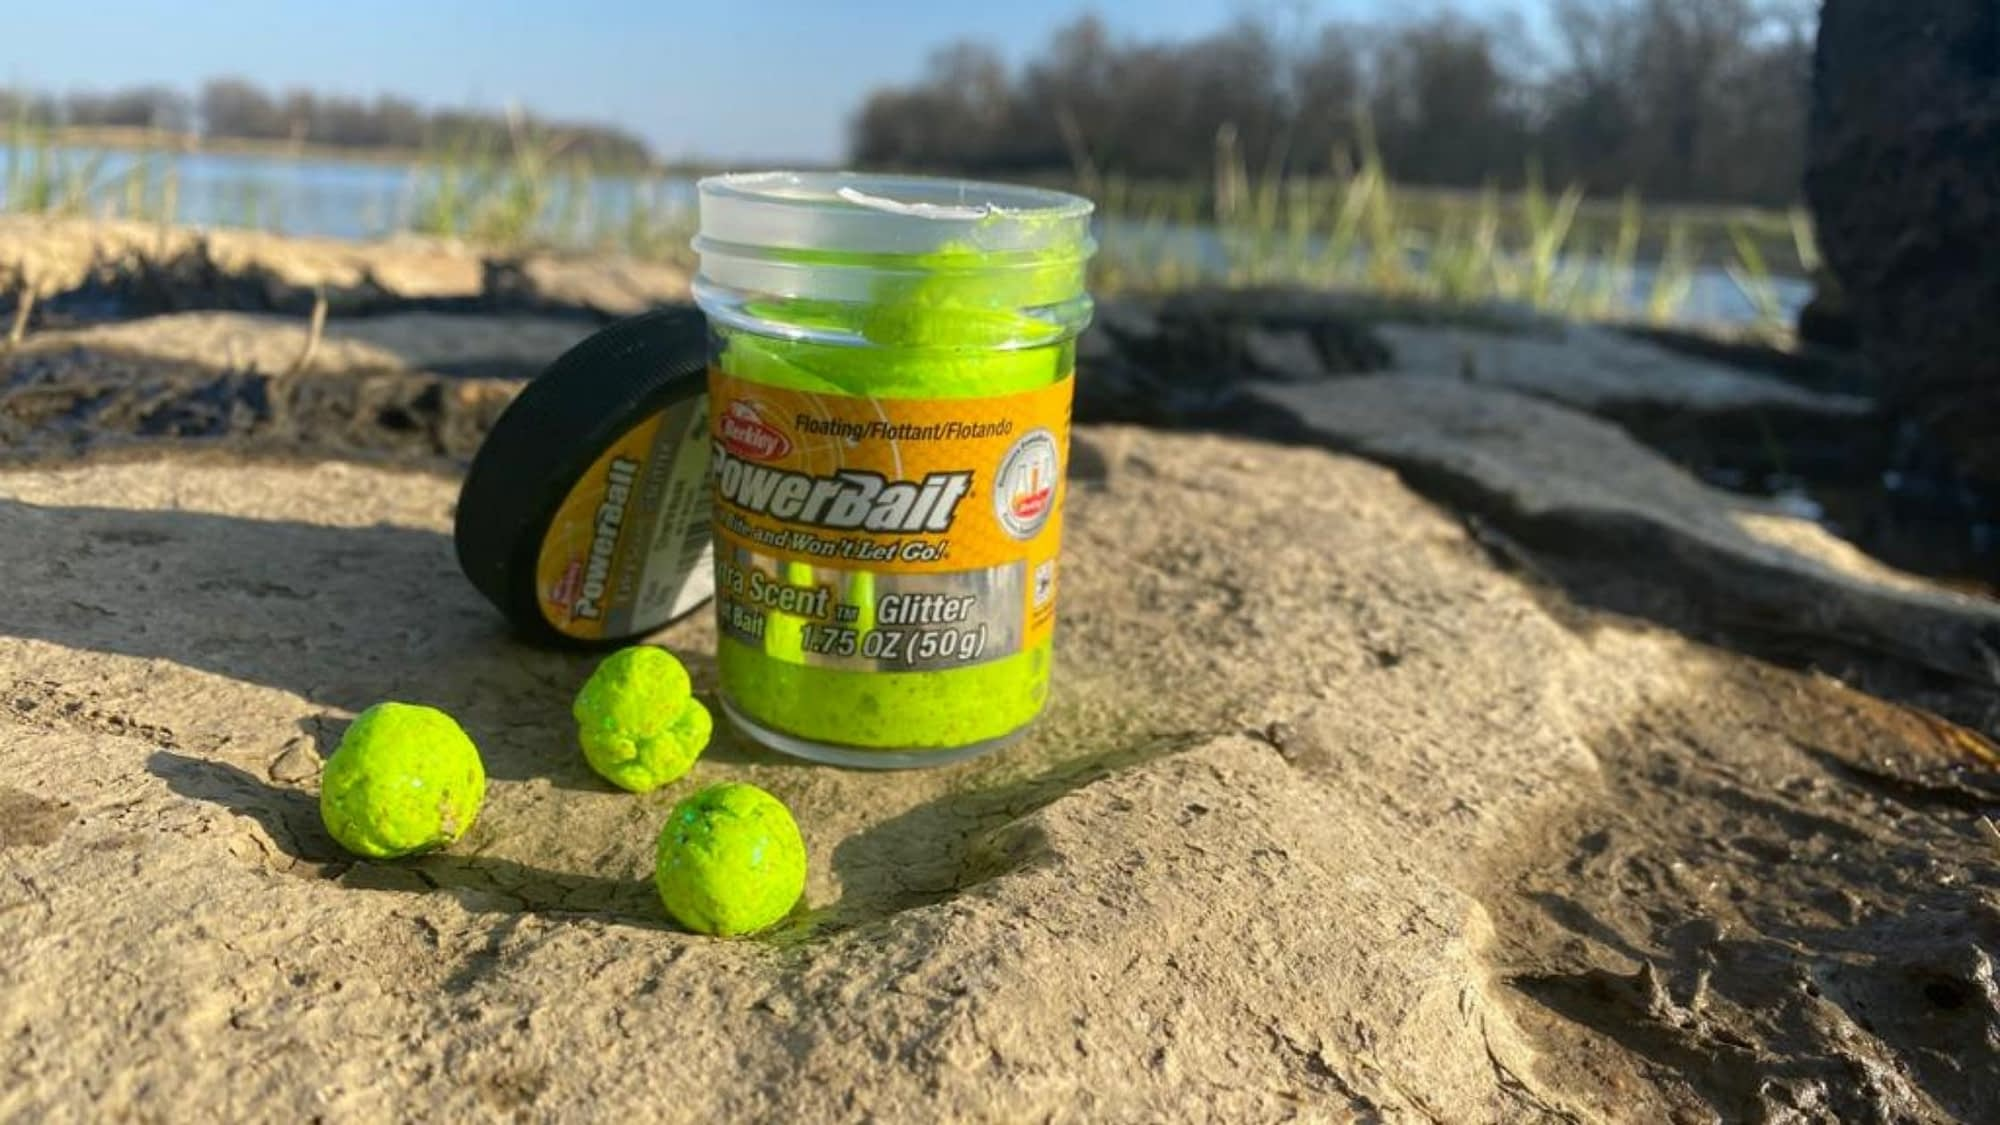 Best Powerbait For Trout